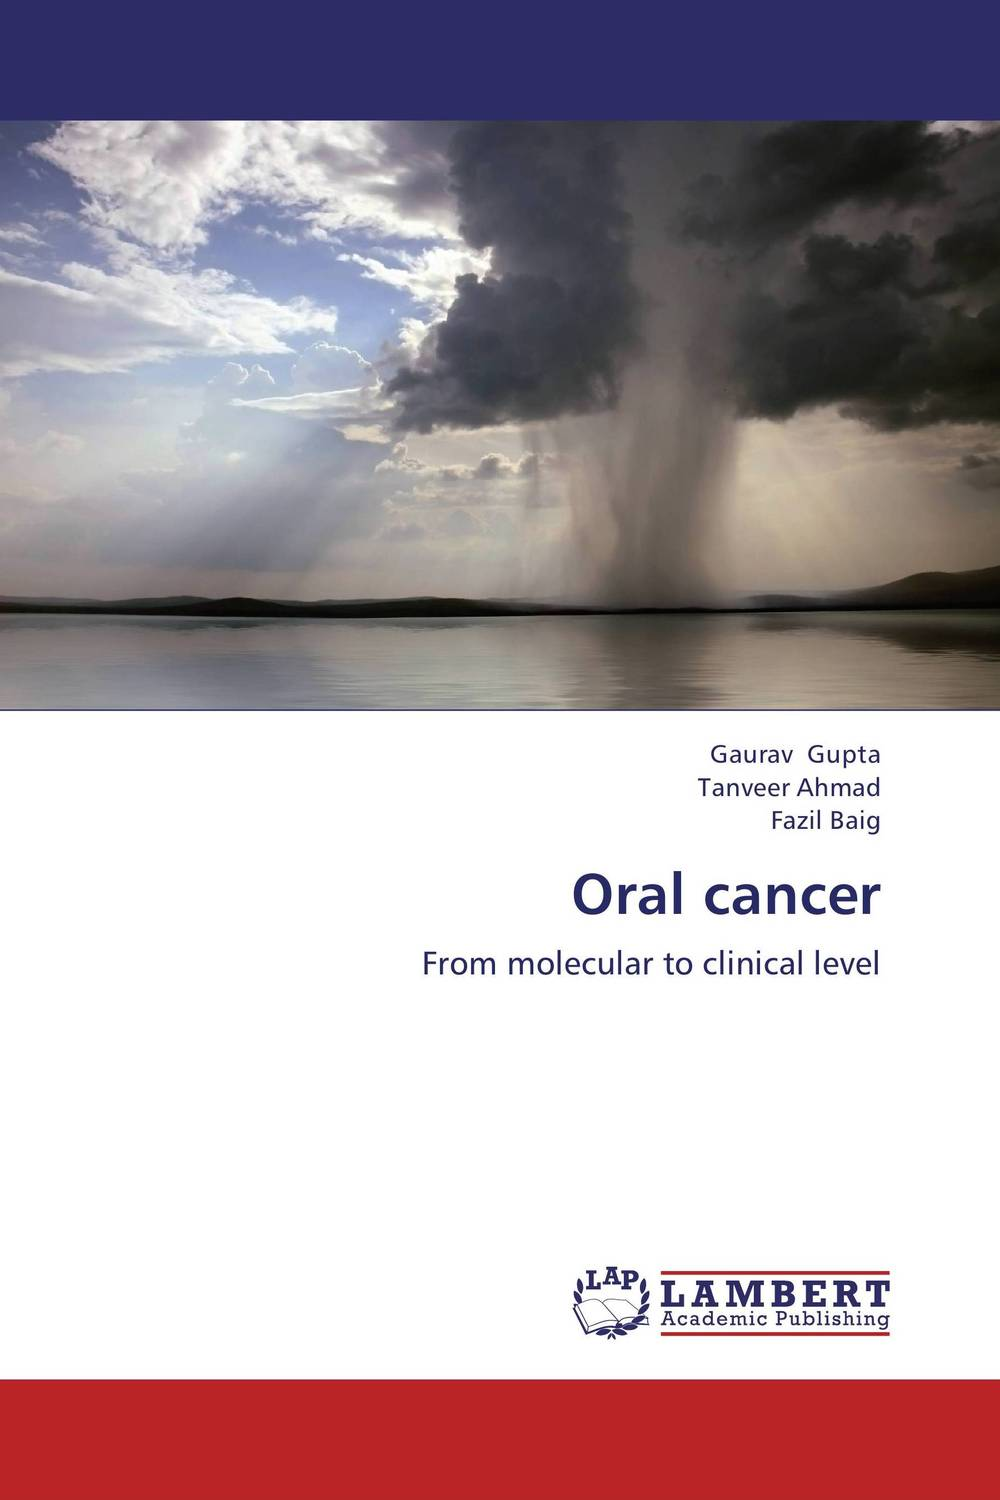 Oral cancer viruses cell transformation and cancer 5